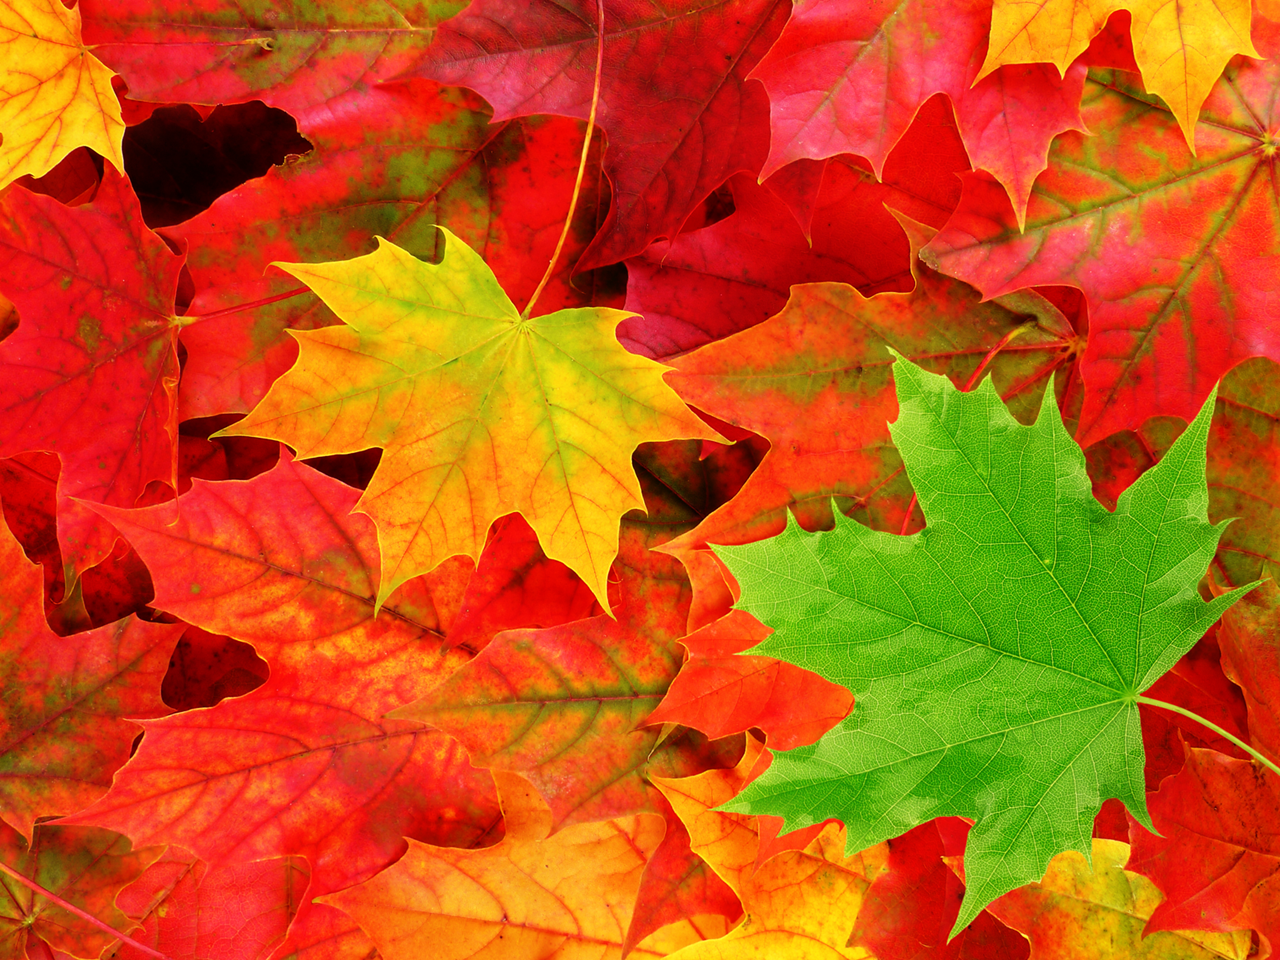 pemandangan Autumn Leaves Wallpaper 1280x960